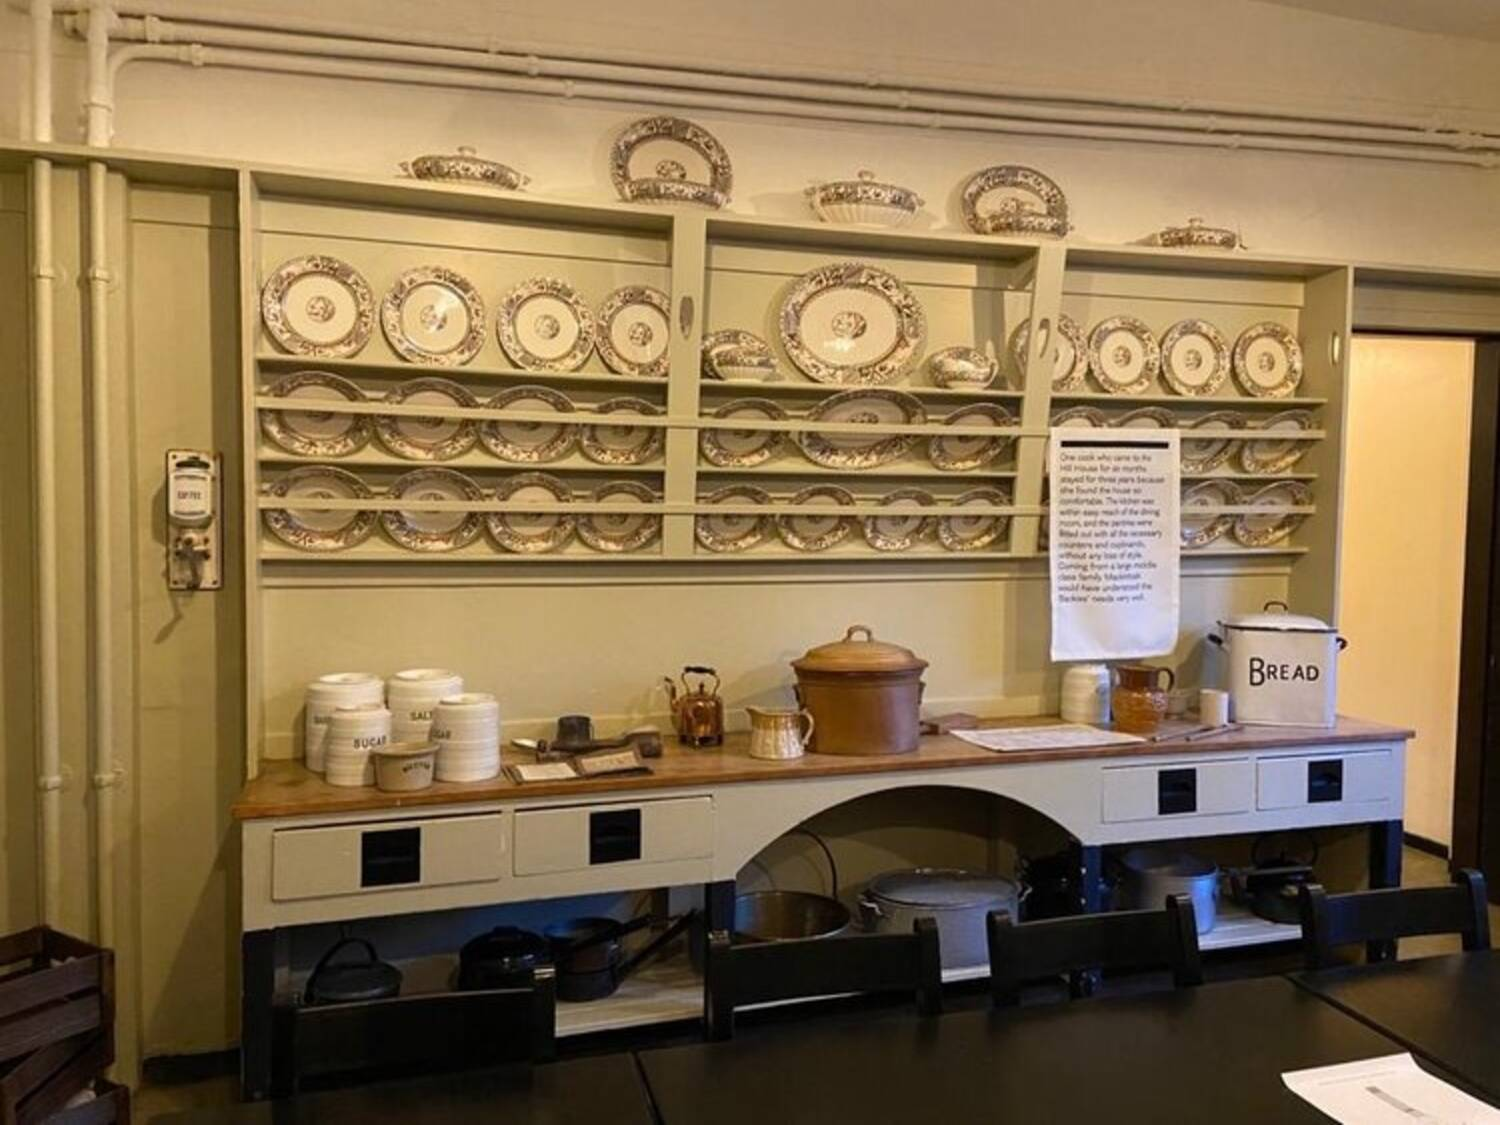 A built-in painted dresser with plates on shelves against the wall. The worktop has boxes and jars on it.